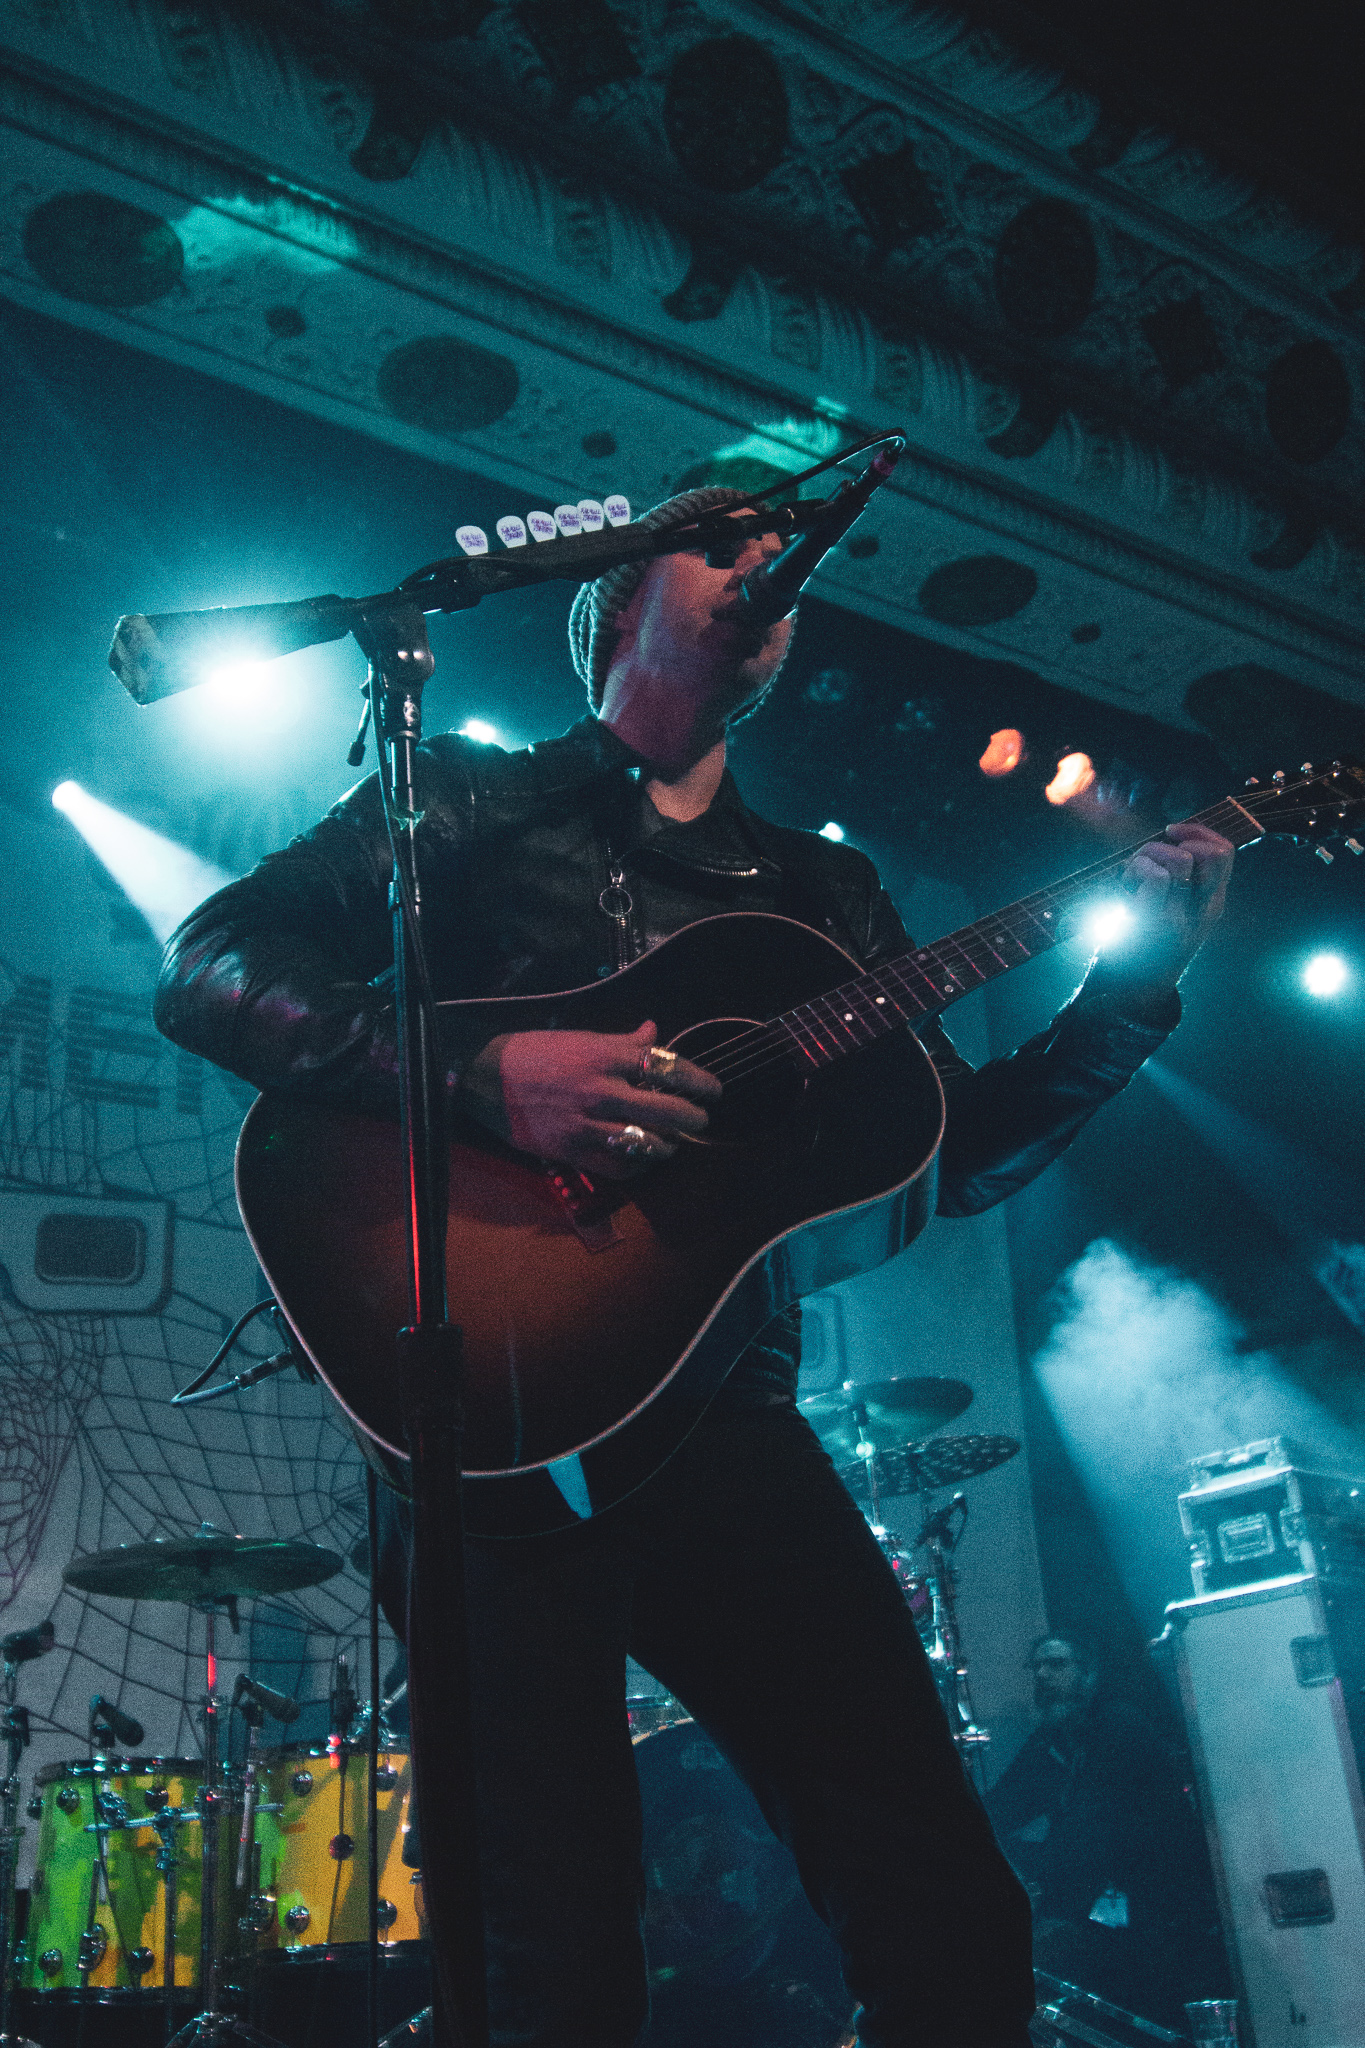 Tim Lopez of The Plain White T's at The Metro in Chicago, IL on 11/12/2019. Photo: Abby Hamann